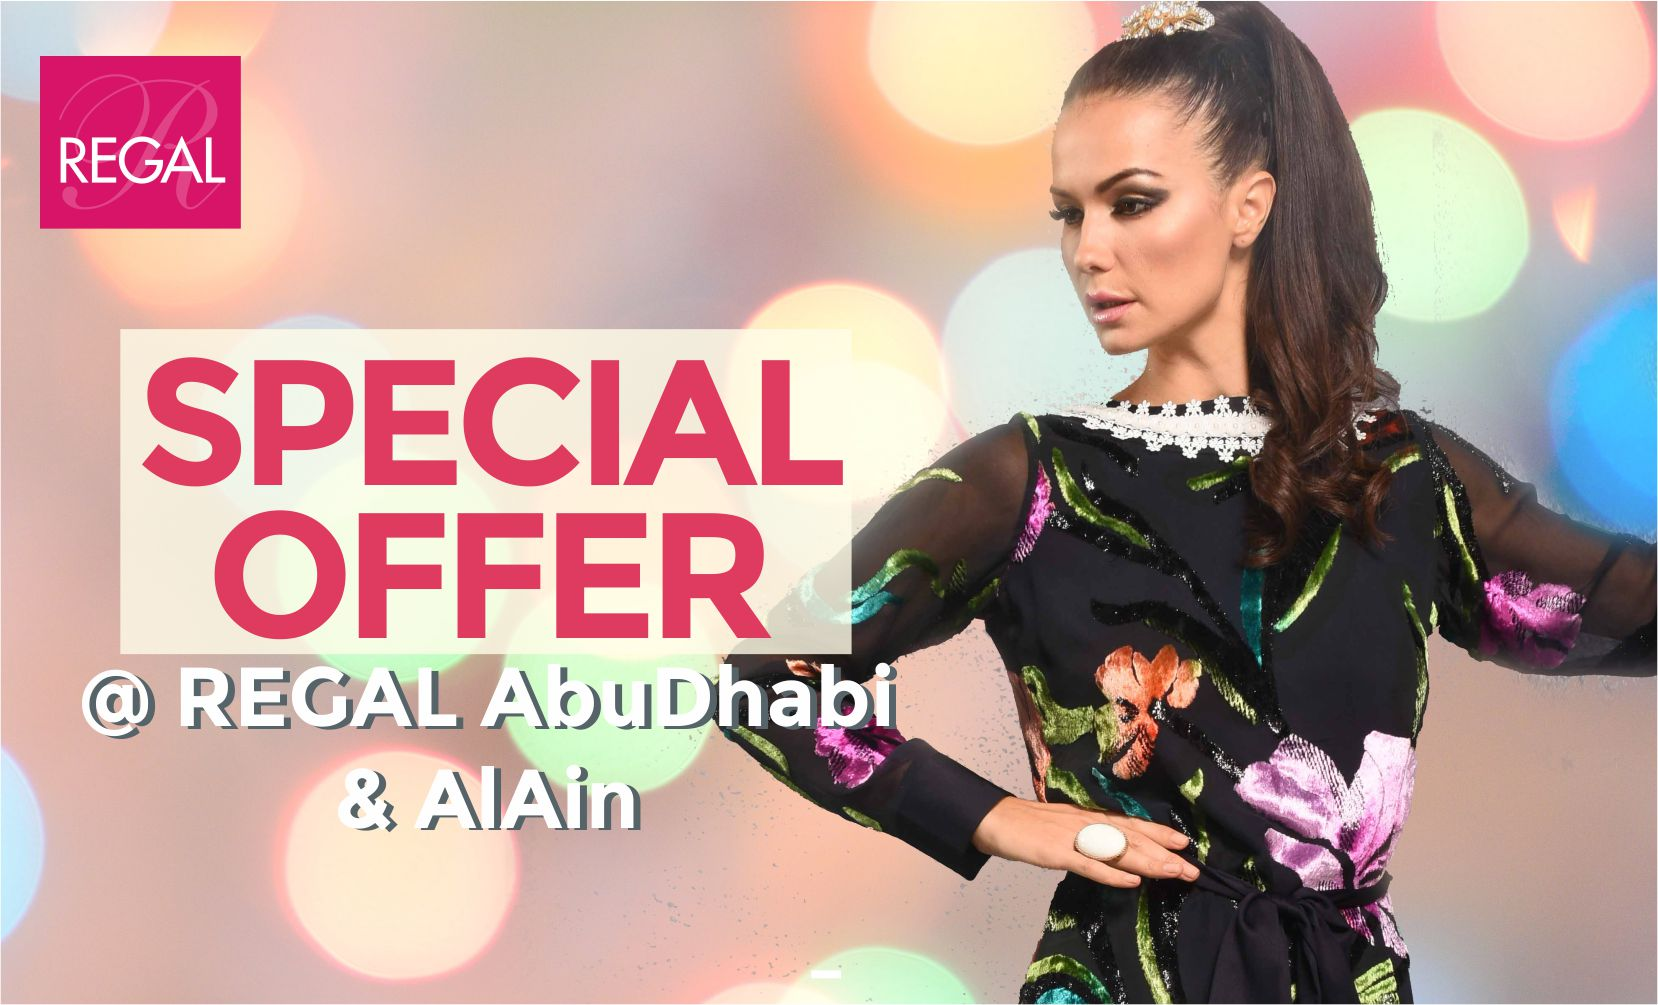 Special Offer at Abu Dhabi and Al Ain